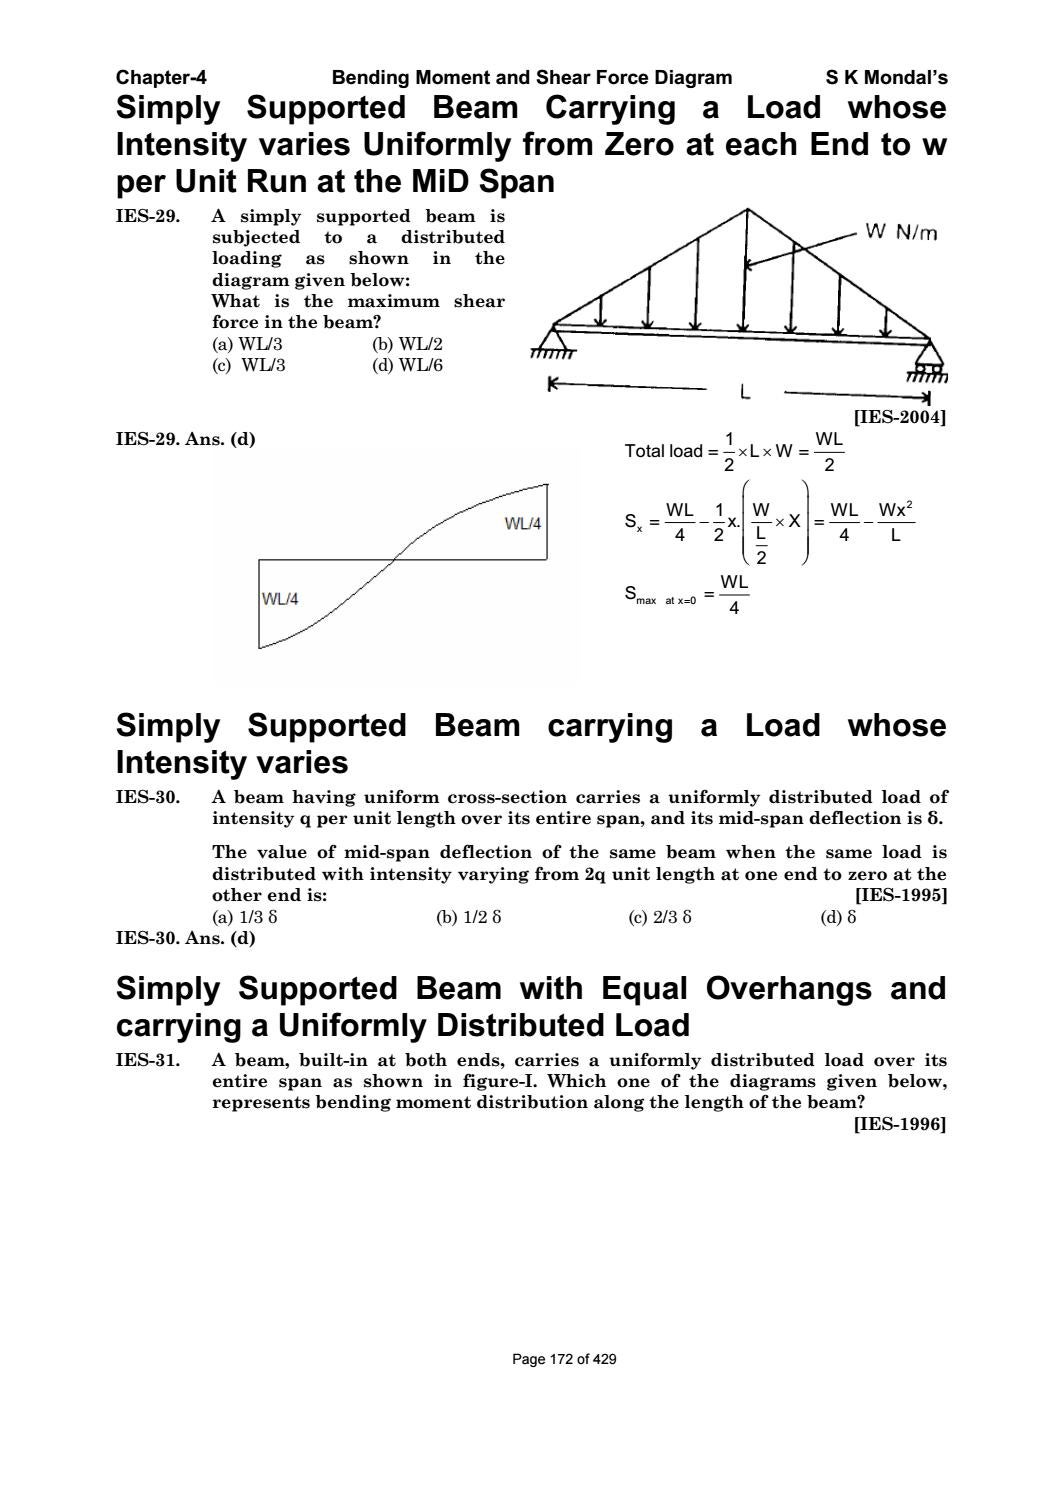 shear and moment diagrams distributed load two way light switch wiring diagram australia strength of materials by s k mondal pdf dharmaraj issuu